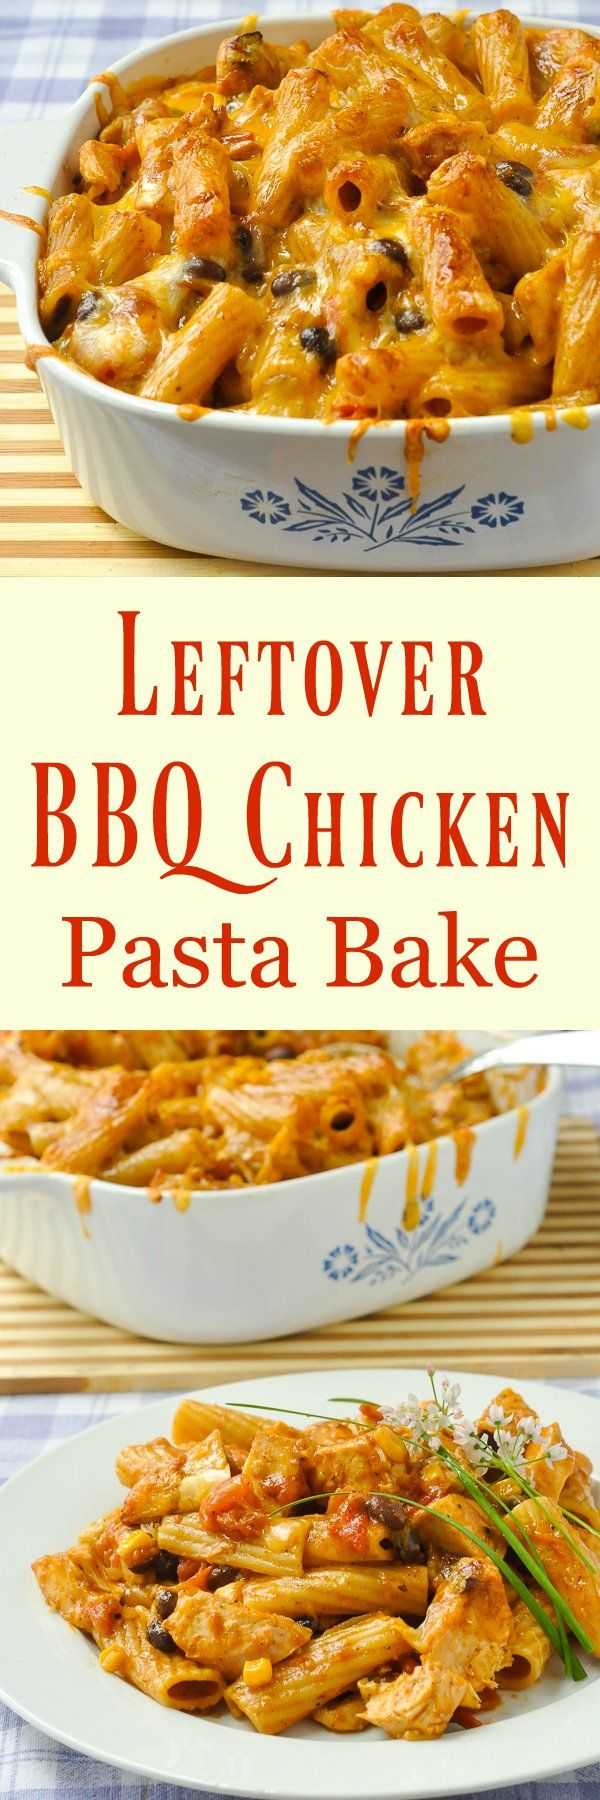 Bbq Chicken Pasta Bake Turn Any Kind Of Leftover Chicken Into A 2nd Meal Recipe Chicken Pasta Bake Bbq Chicken Pasta Bbq Chicken Recipes